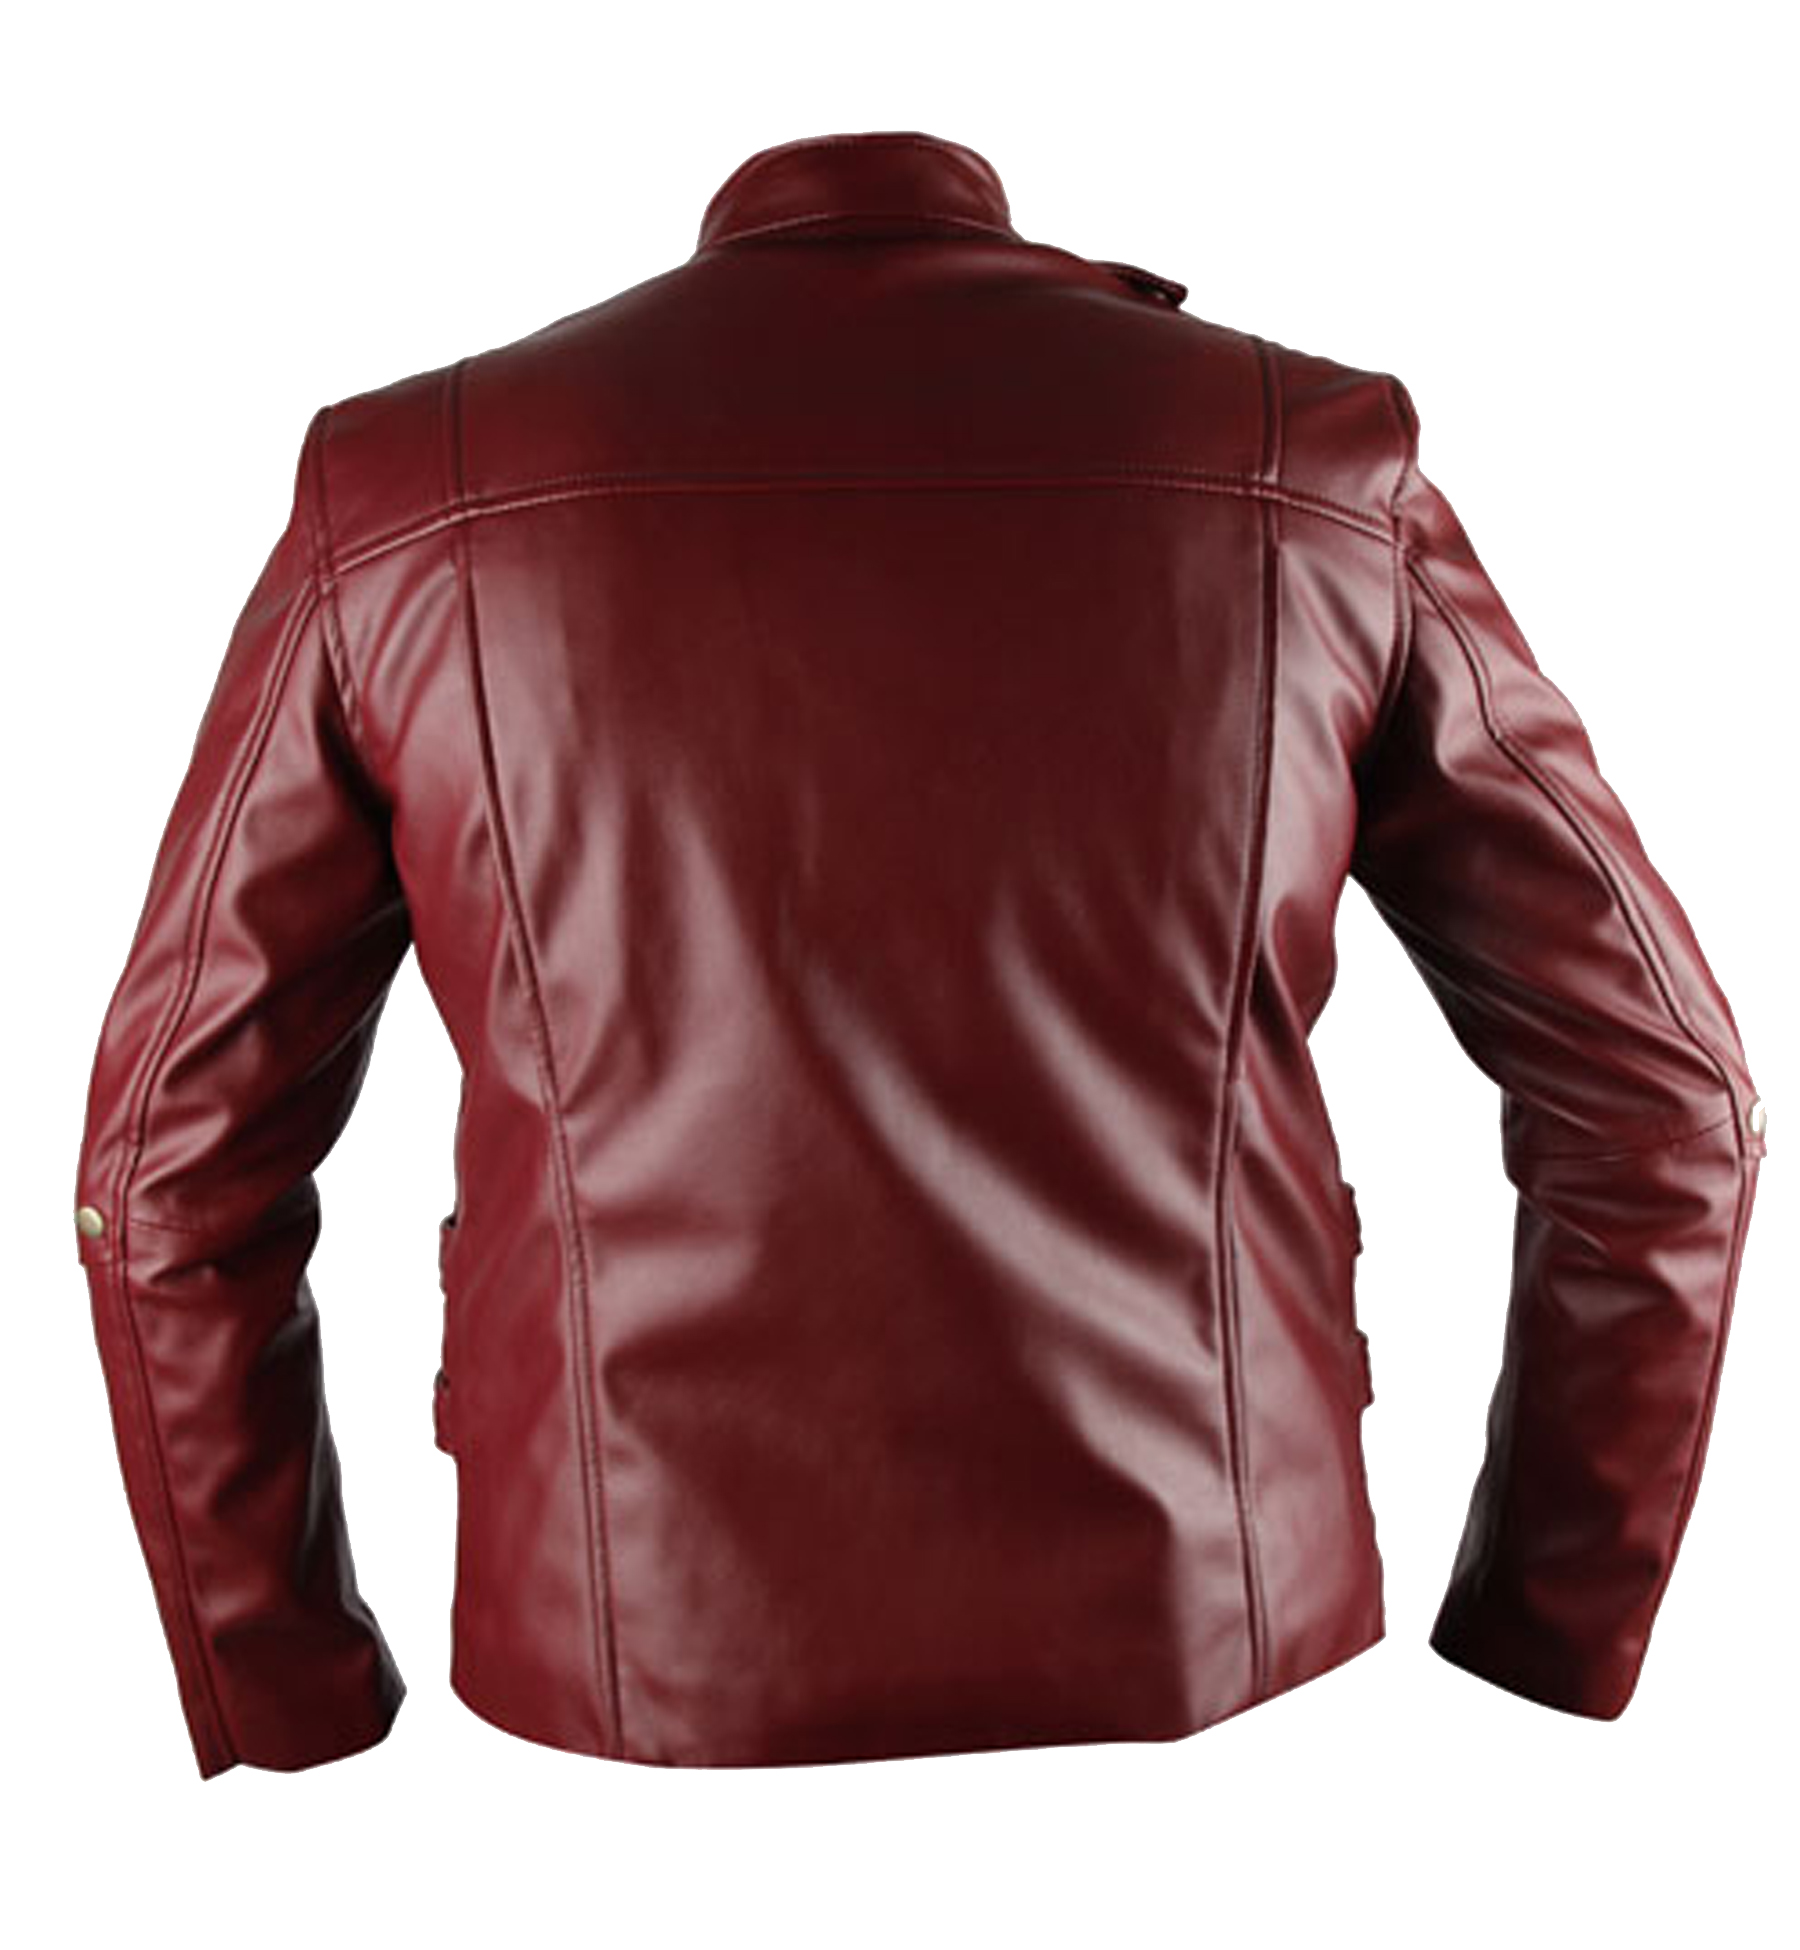 New-Star-Lord-Guardians-Of-The-Galaxy-Leather-Jacket-4-1